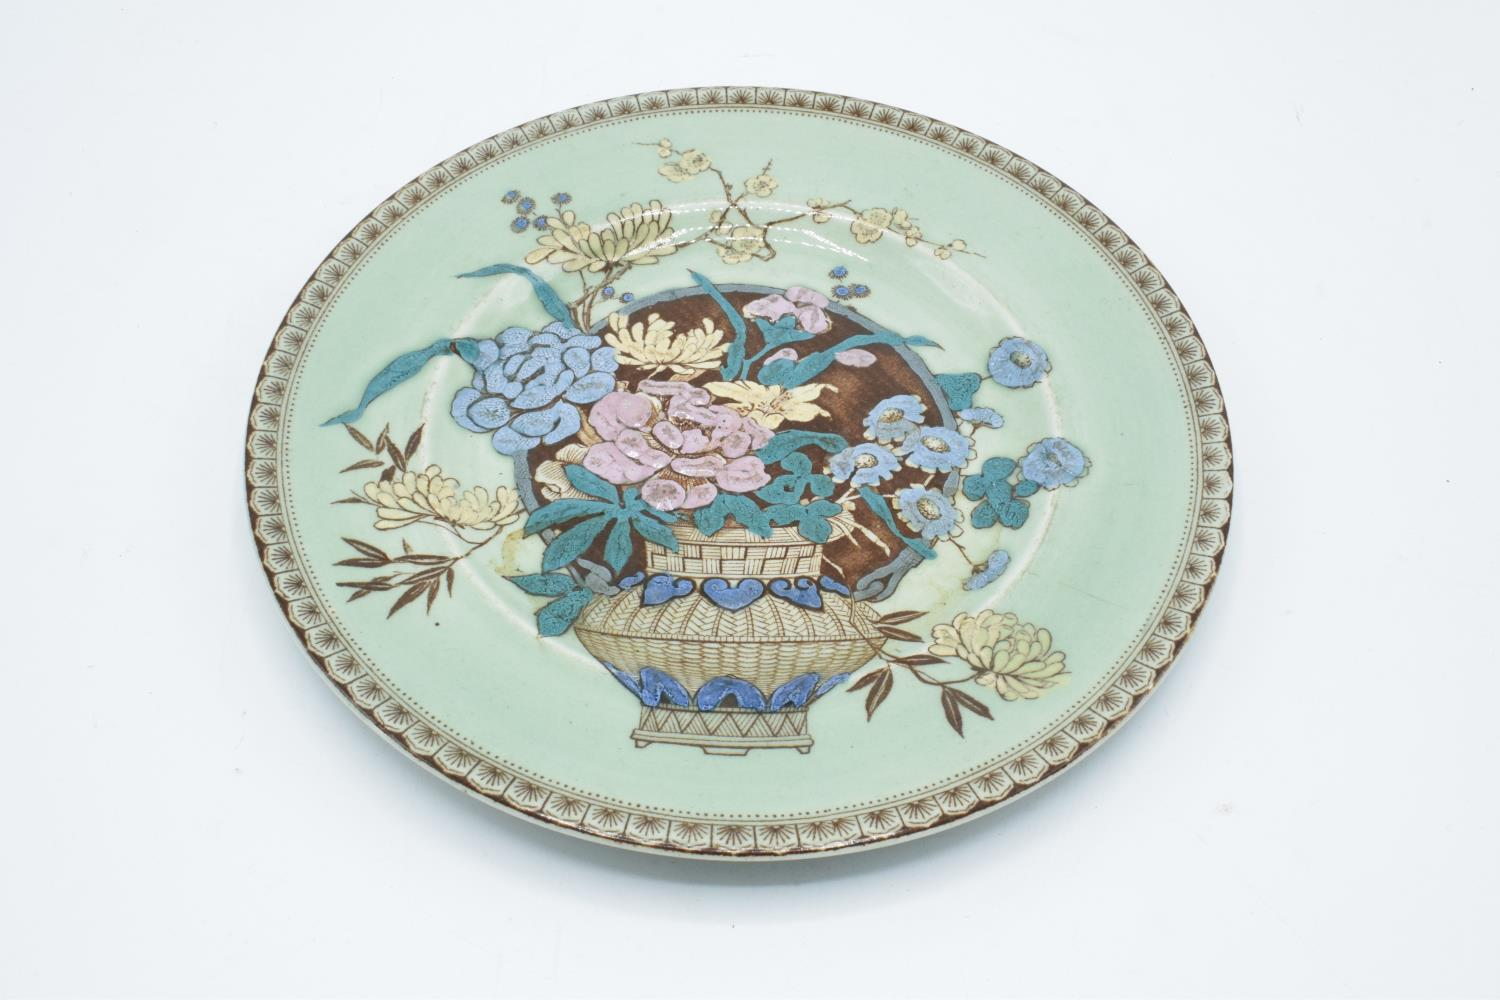 Clarice Cliff (Newport) embossed plate with a floral pattern. In good condition with no obvious